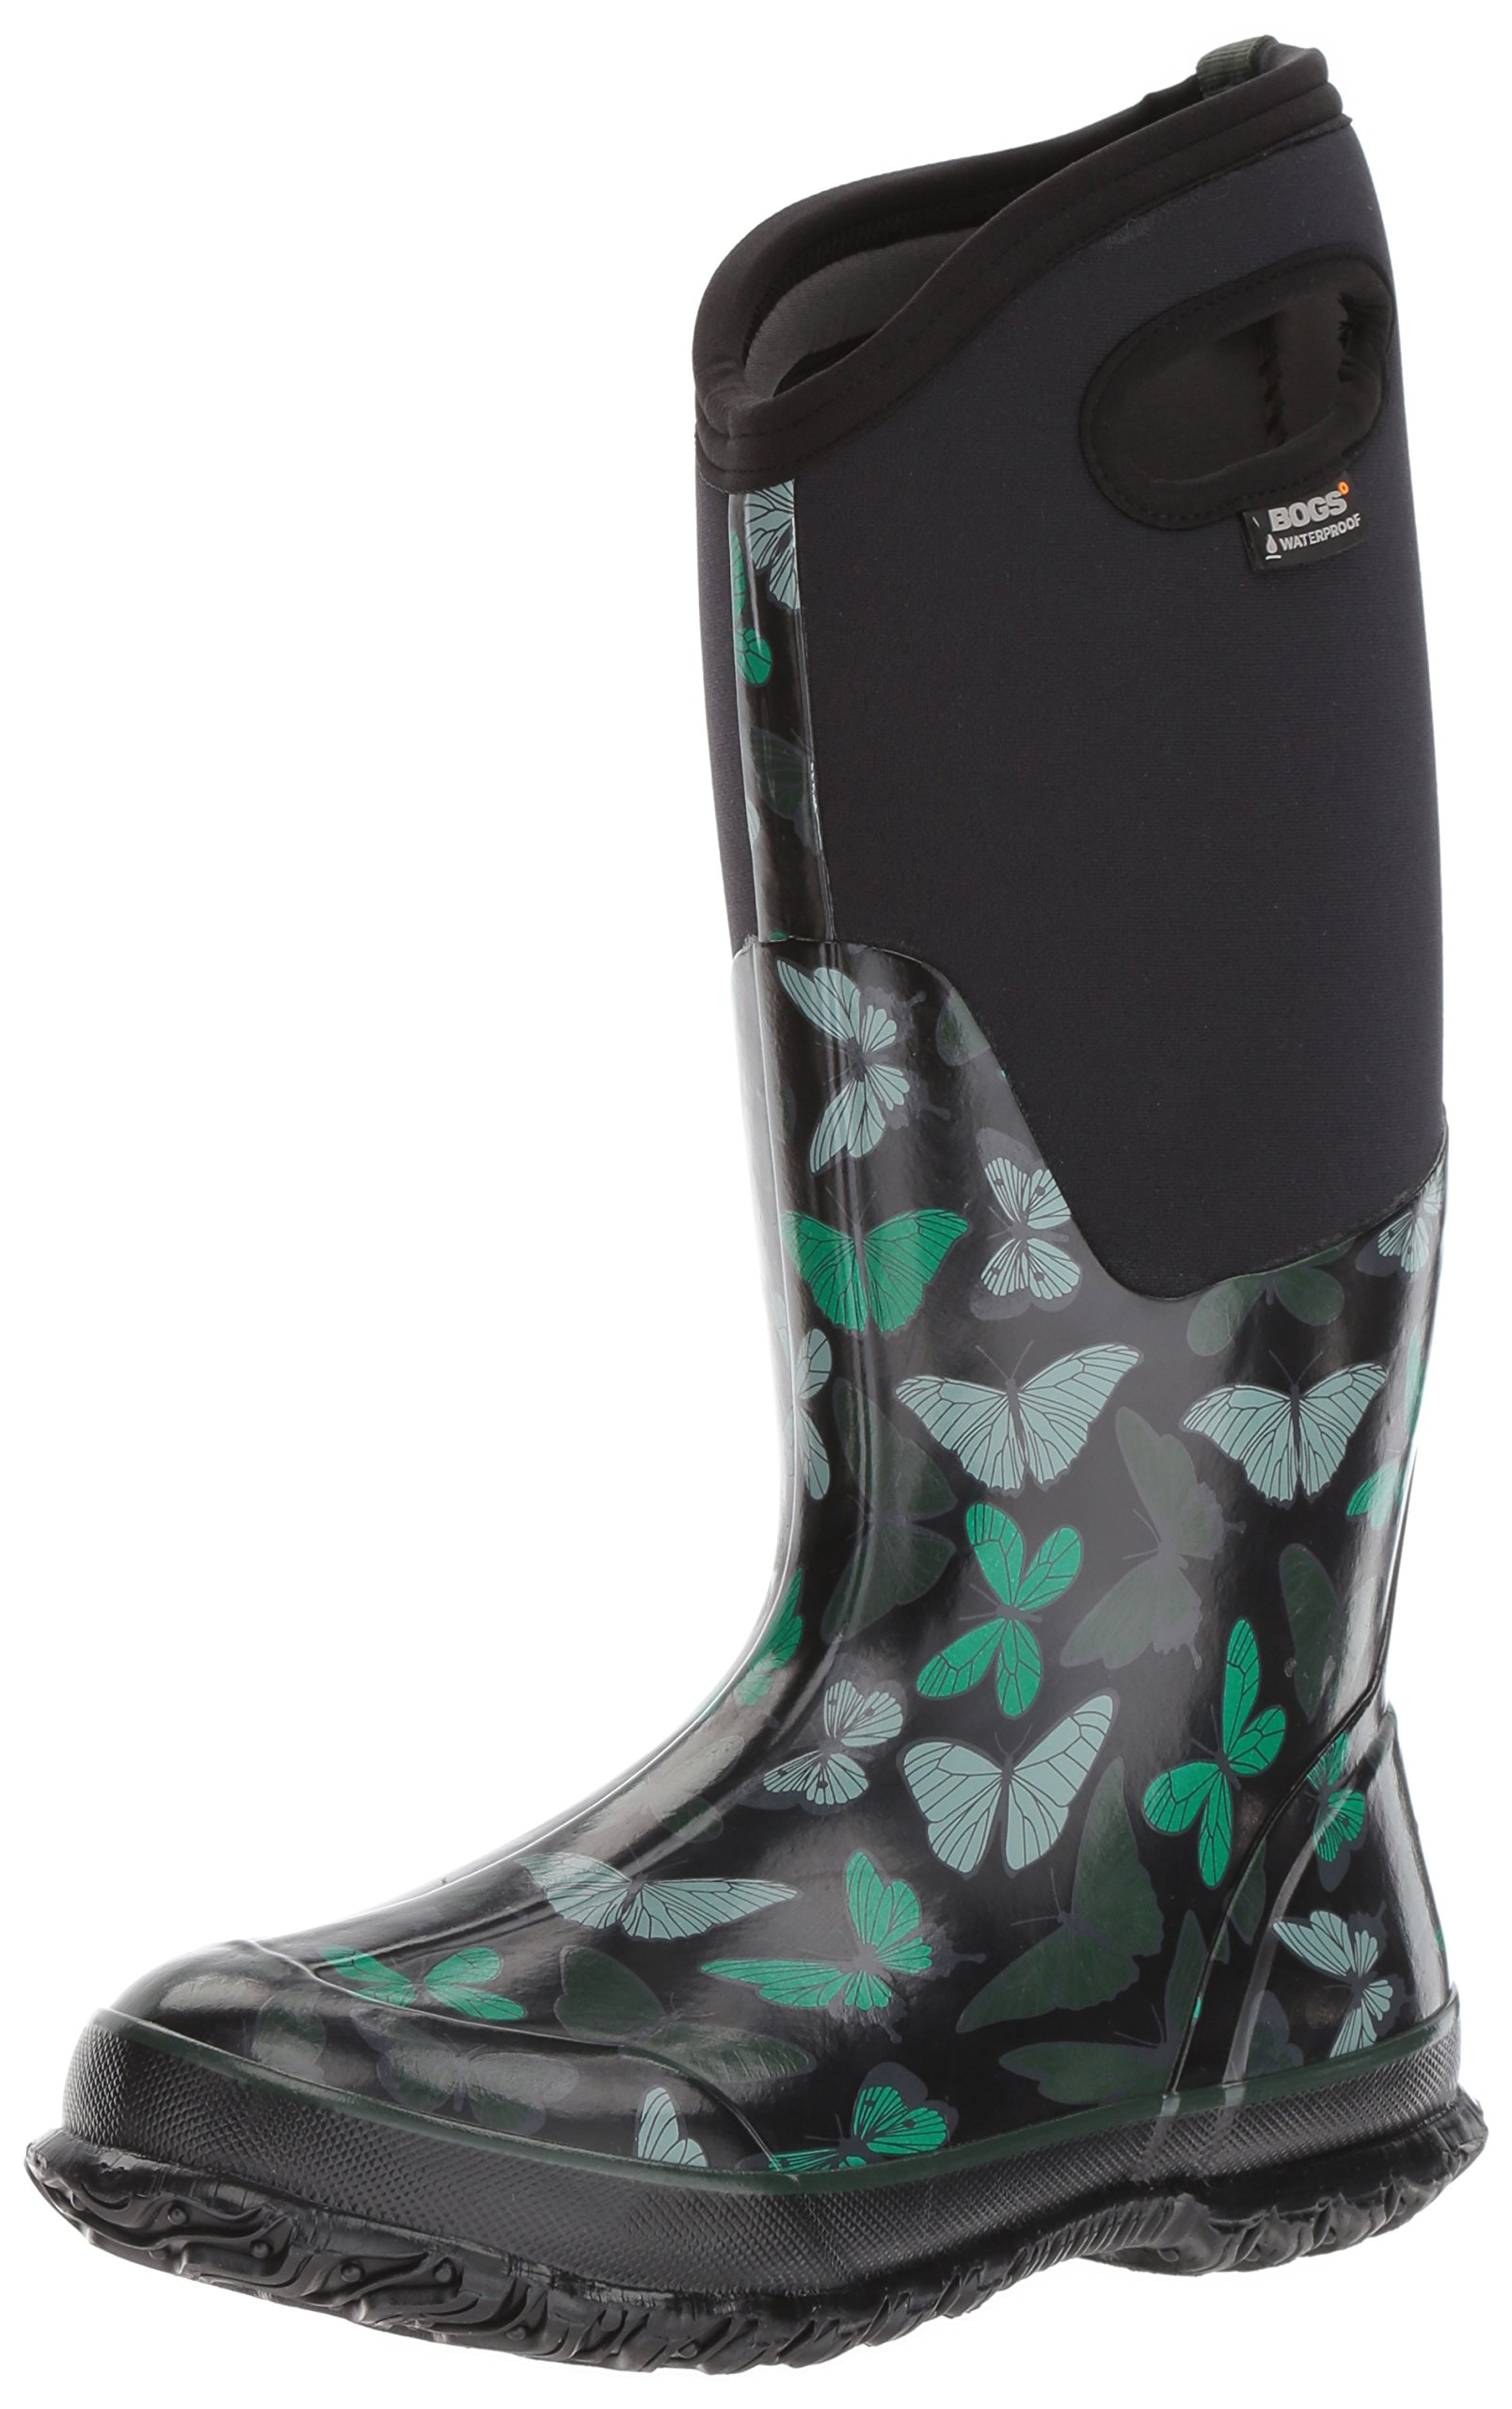 Bogs Women's Classic Butterflies Snow Boot, Black/Multi, 9 M US by Bogs